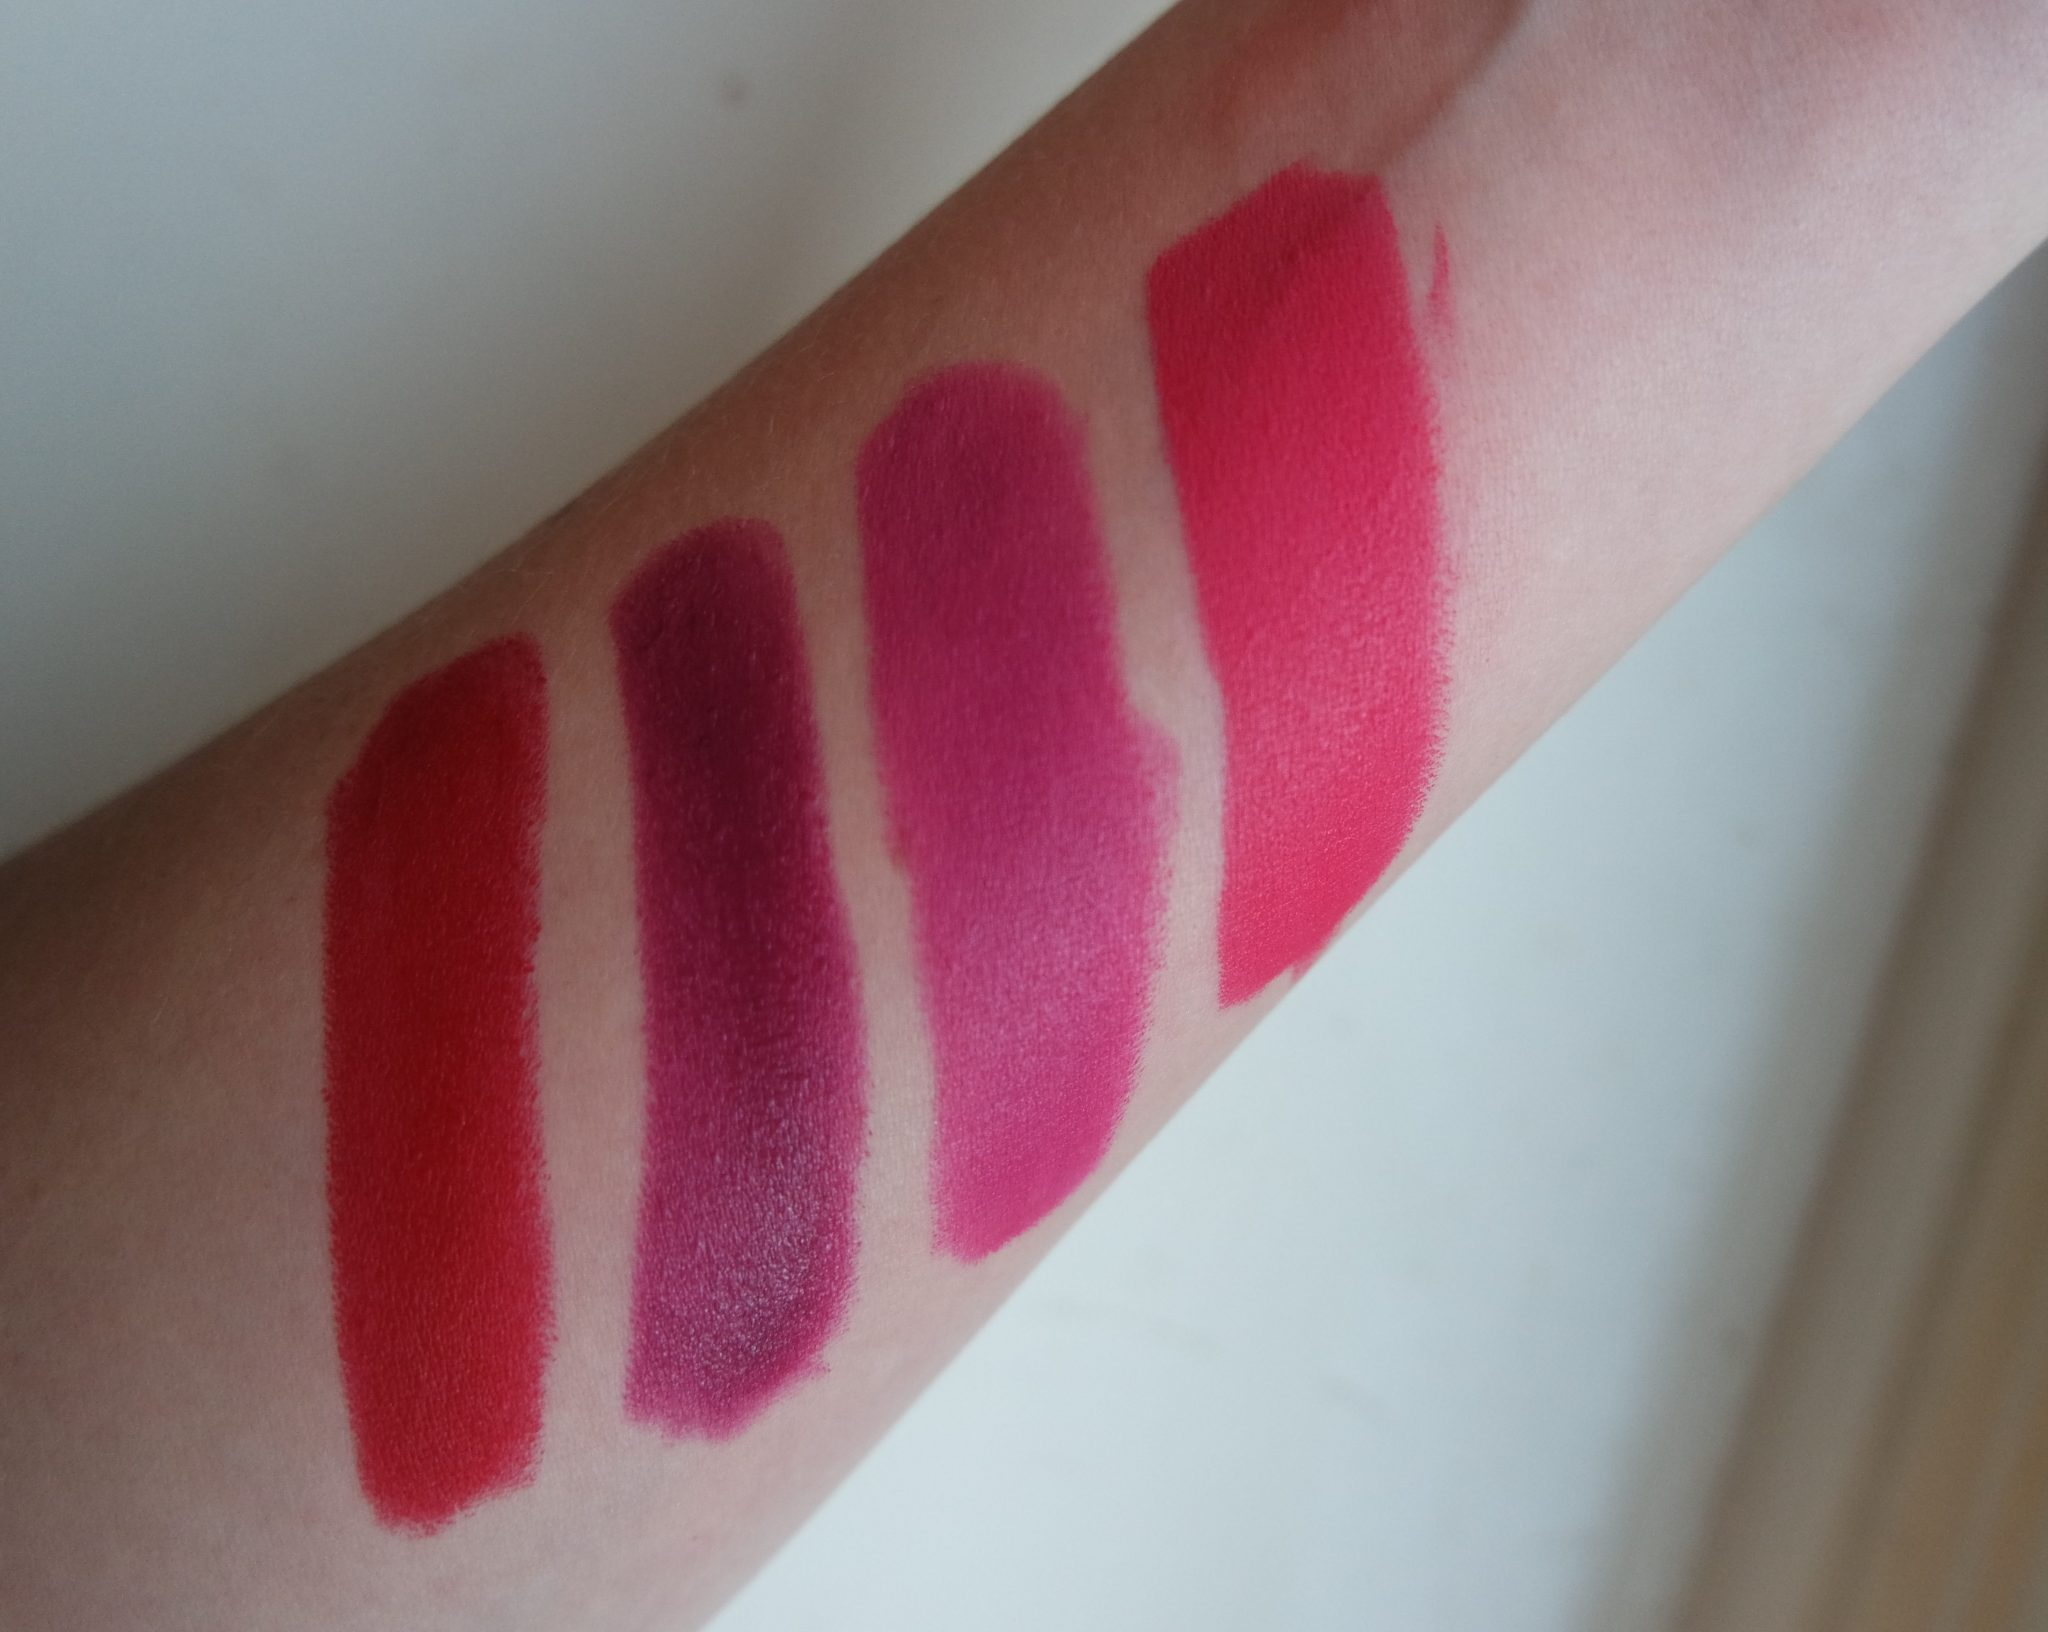 mac lipstick snowball kit review swatches ruby woo rebel out of fab good kisser